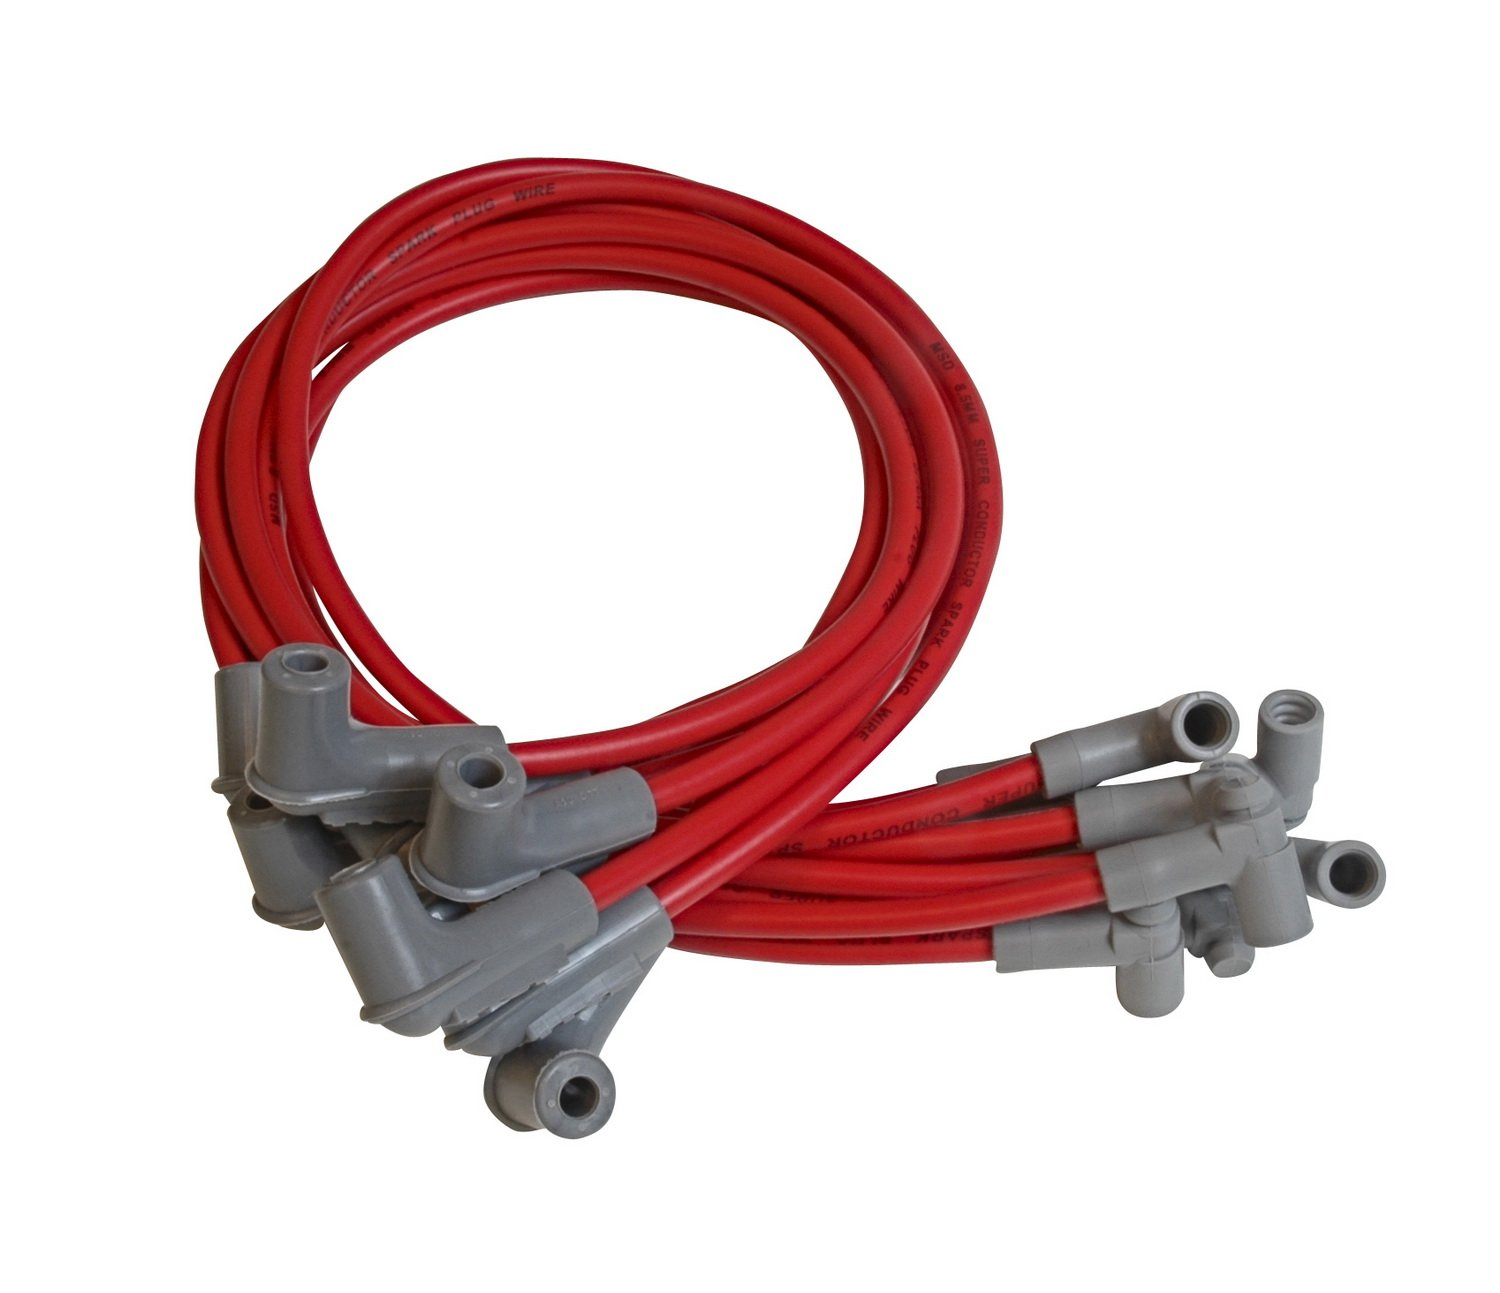 Amazon.com: MSD 35599 Red 8.5mm Super Conductor Spark Red Plug Wire ...